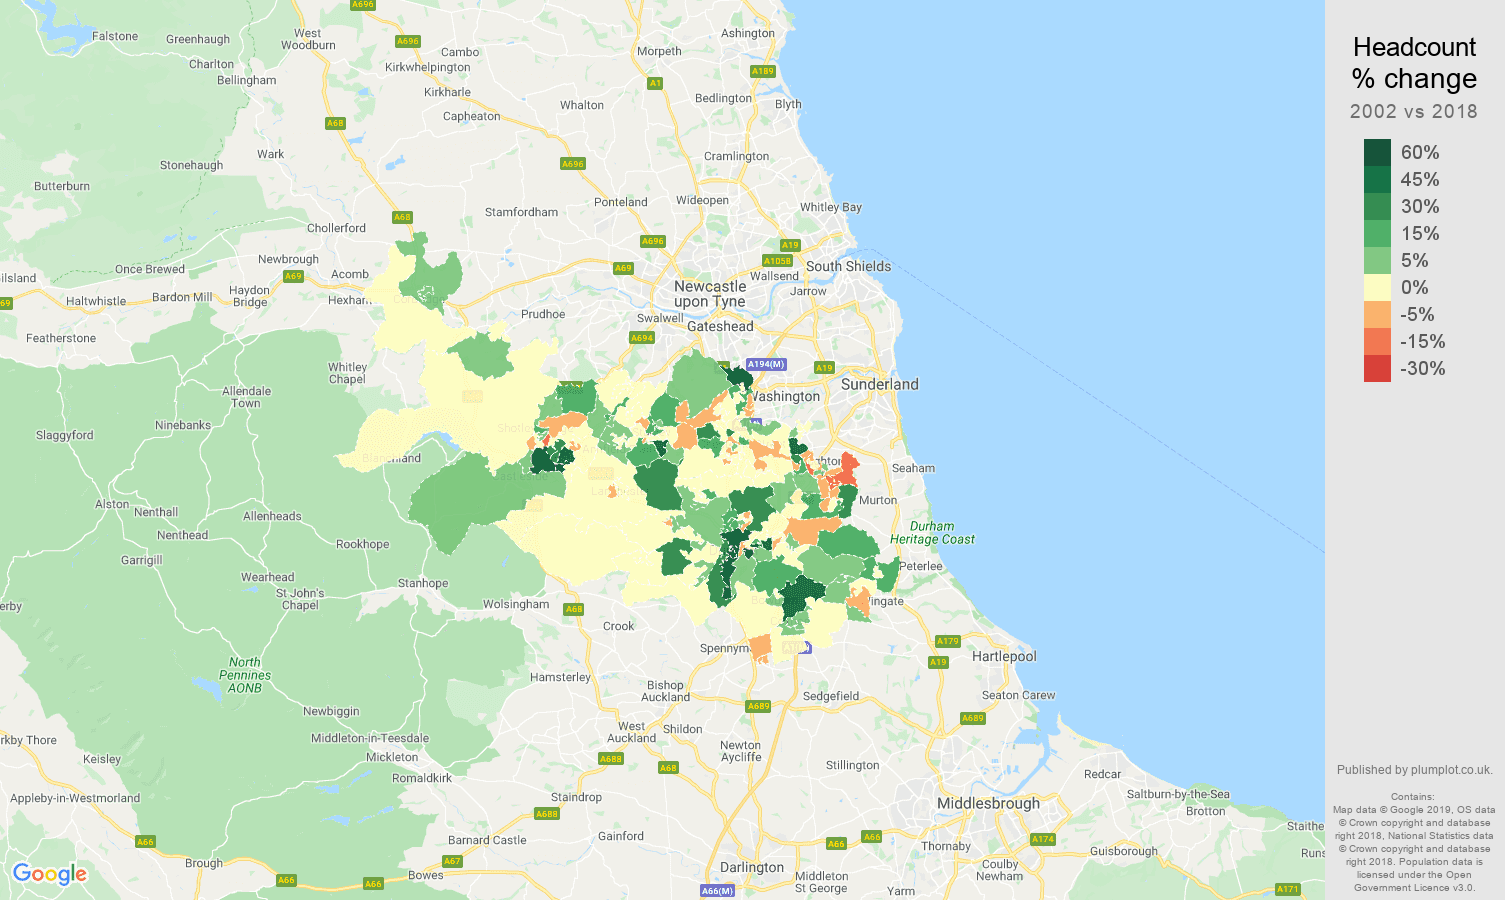 Durham headcount change map